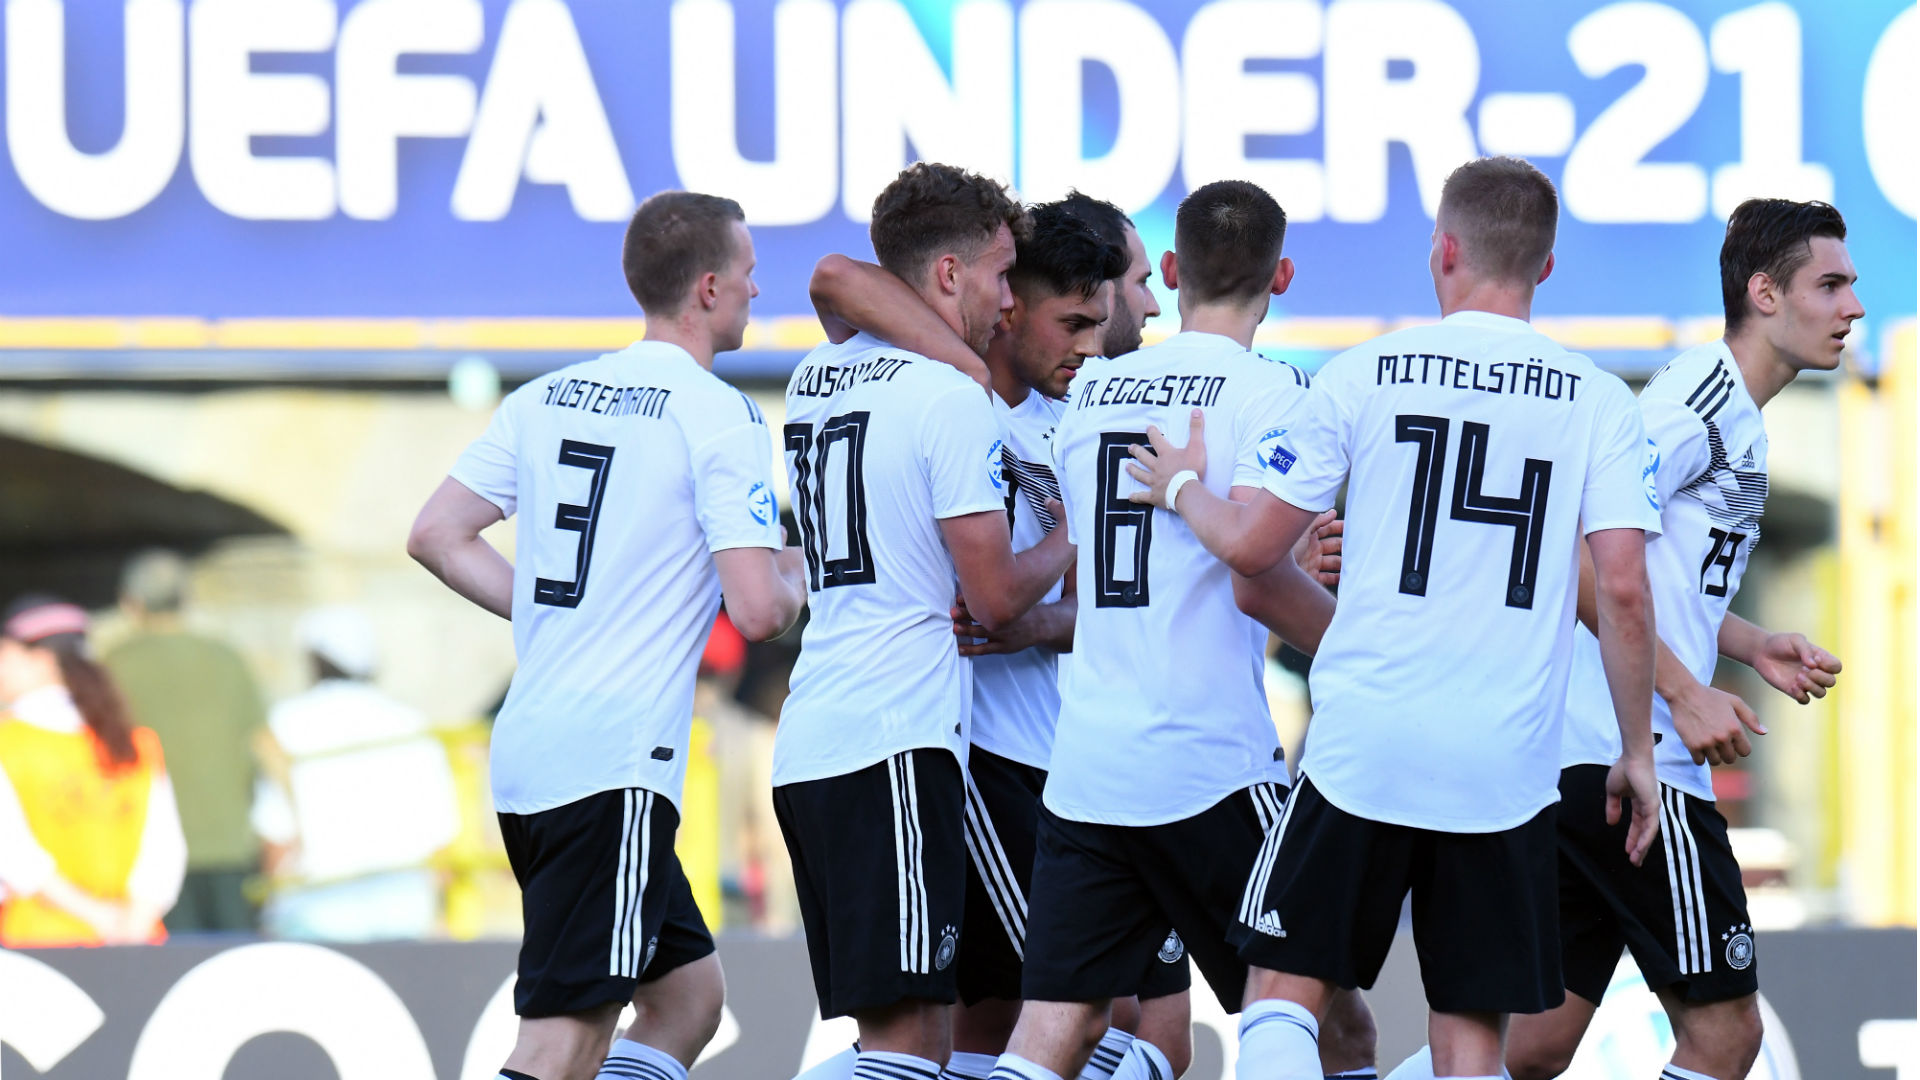 Under 21, Spagna e Germania si divertono: ora si affronteranno in finale